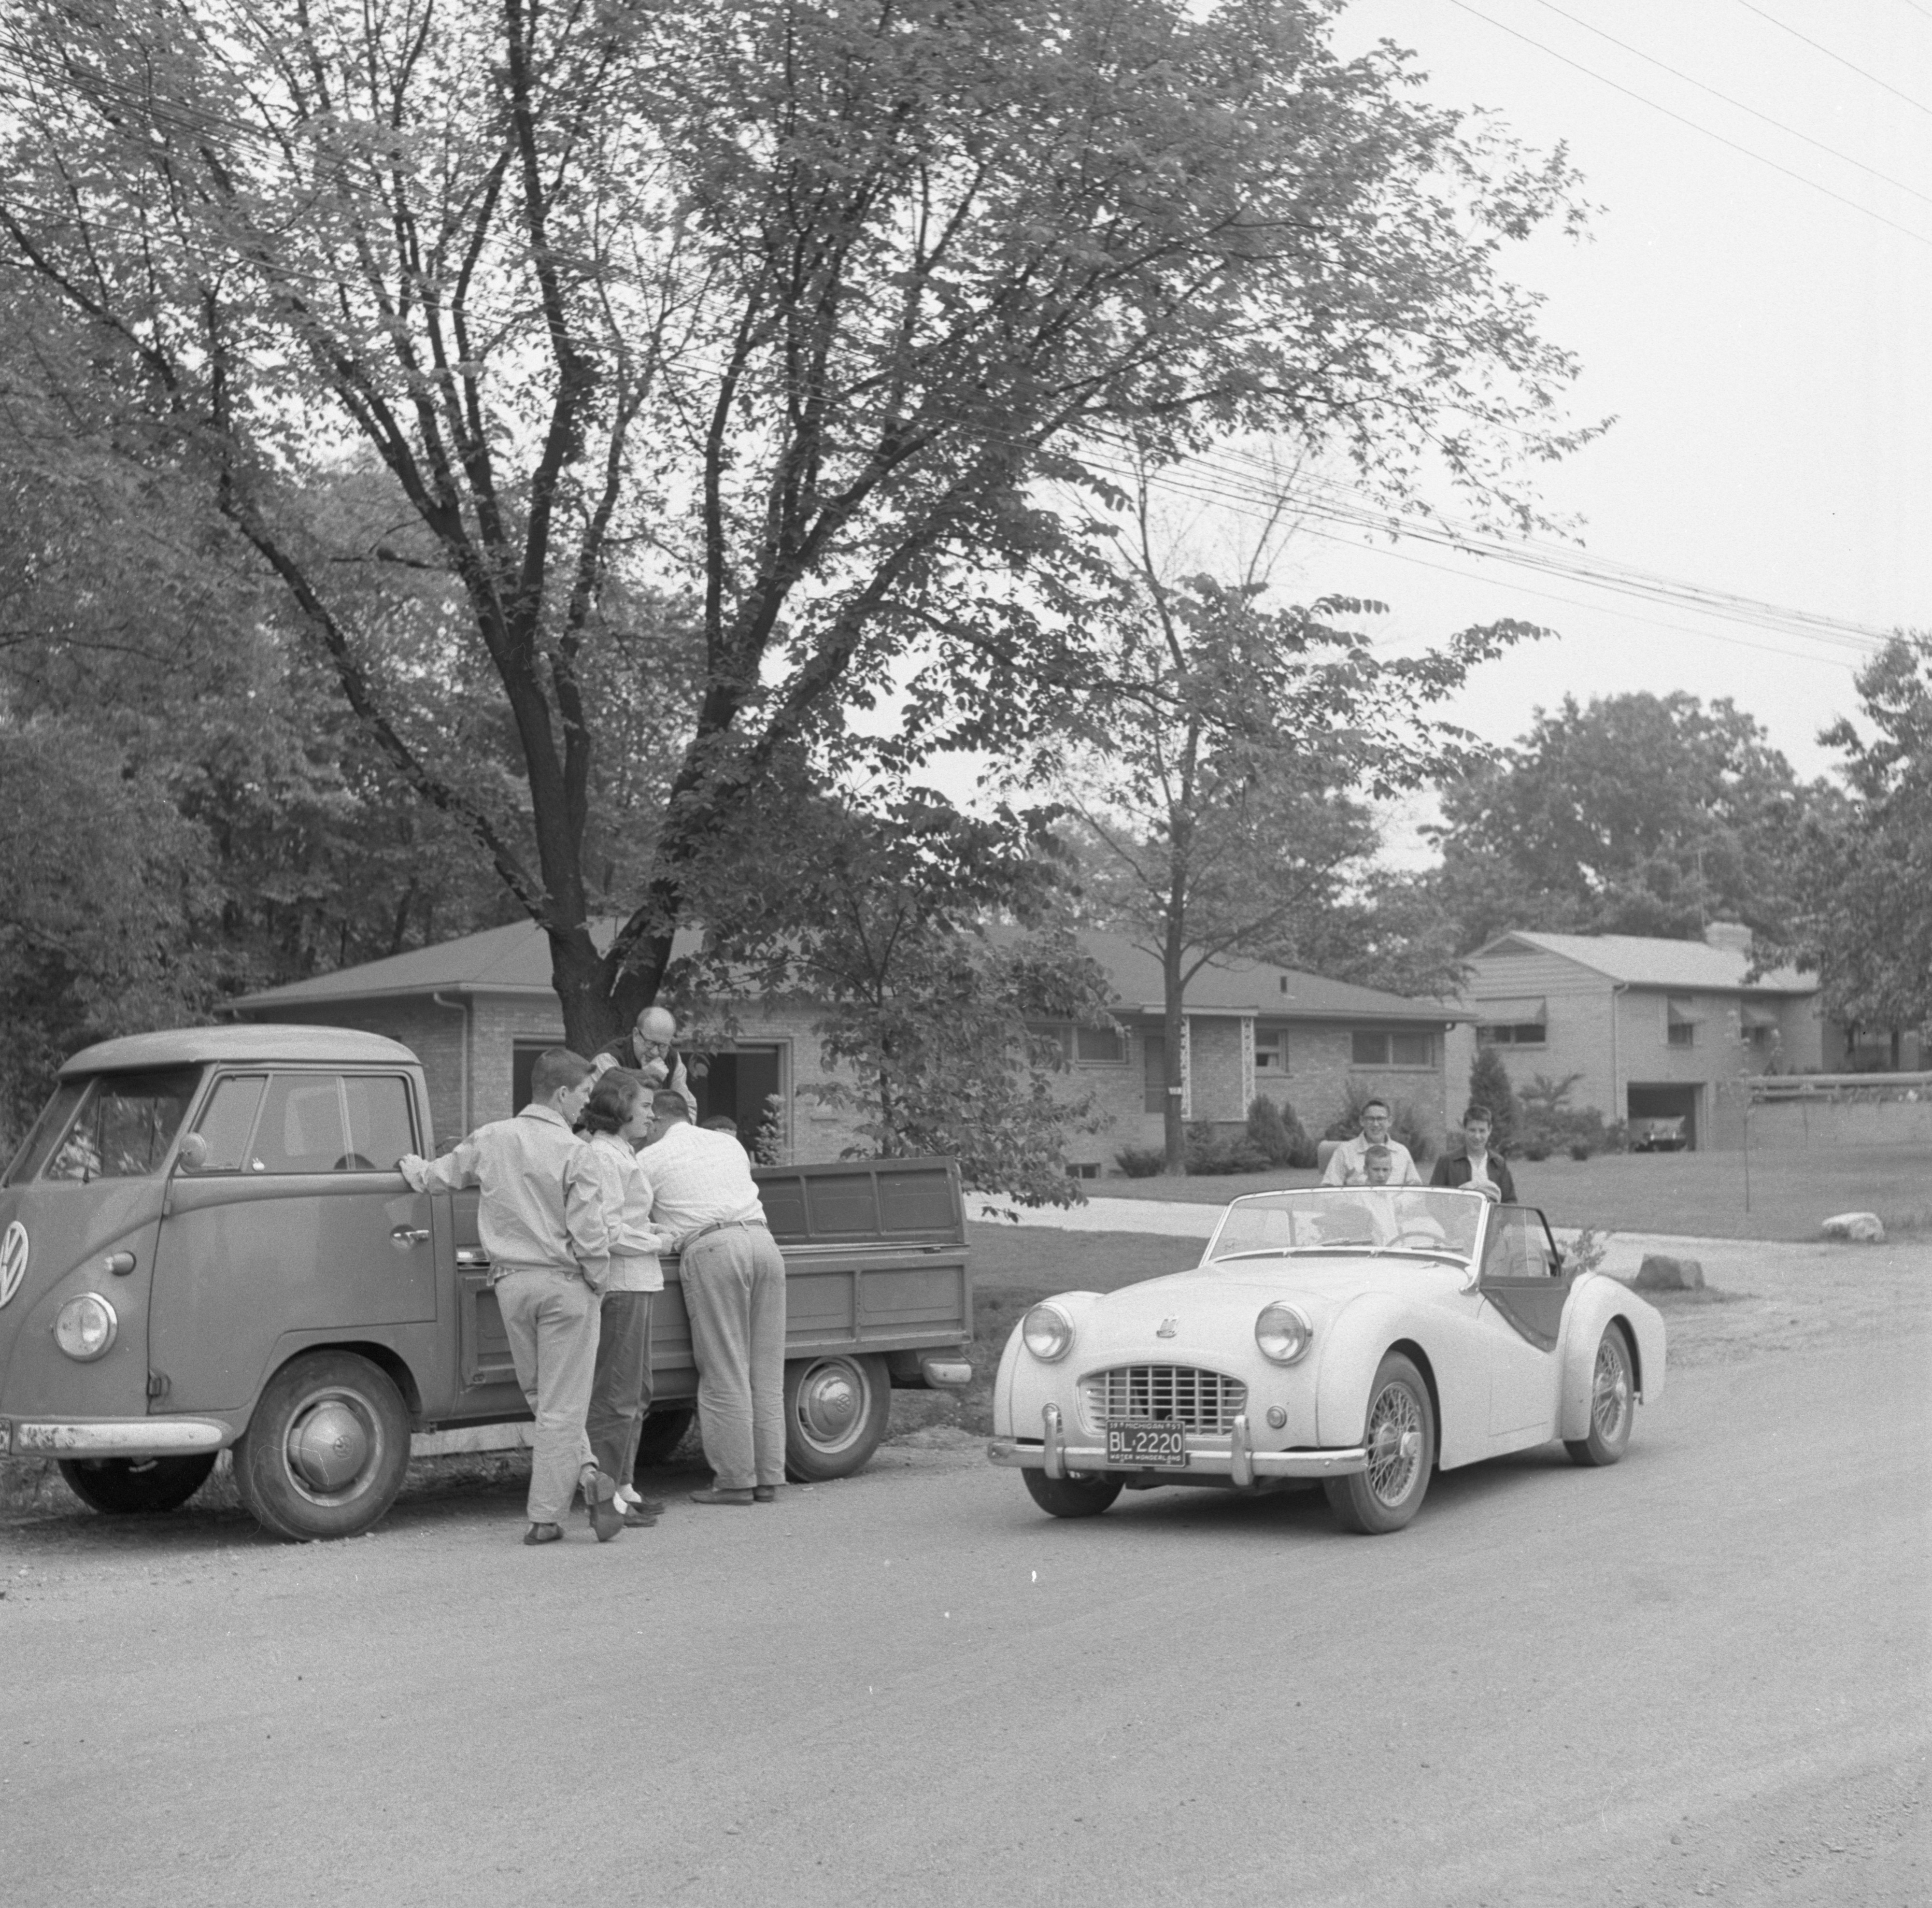 A Driver Reaches The Arlington/Devonshire Check Point In The Foreign Car Road Rally, June 1957 image